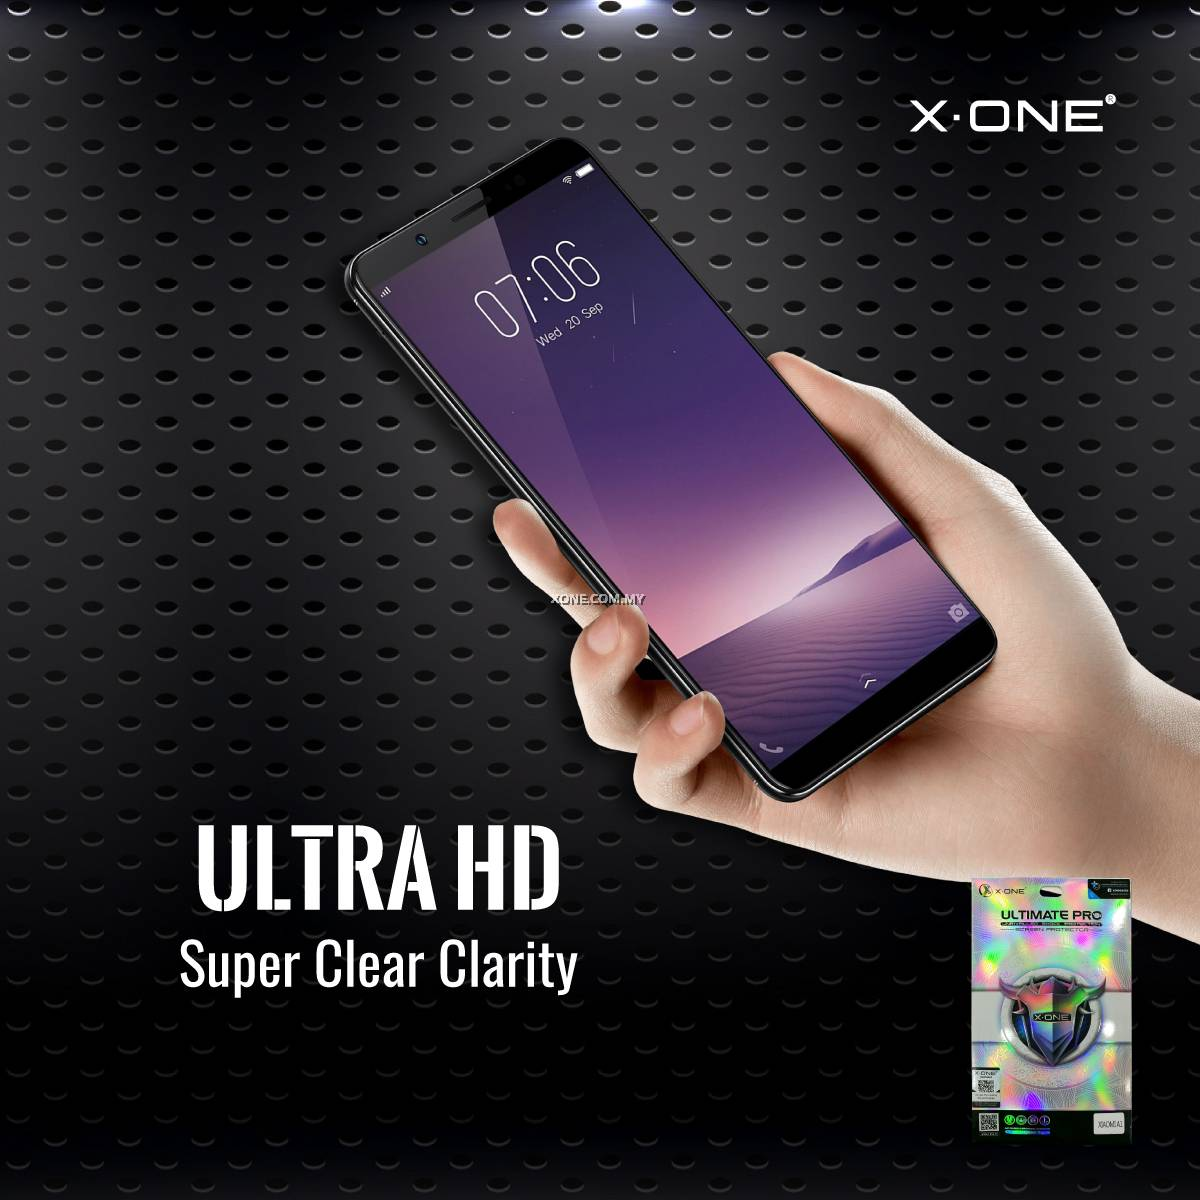 oppo f11 pro x one ultimate pro screen protector authorised x one distributor malaysia. Black Bedroom Furniture Sets. Home Design Ideas